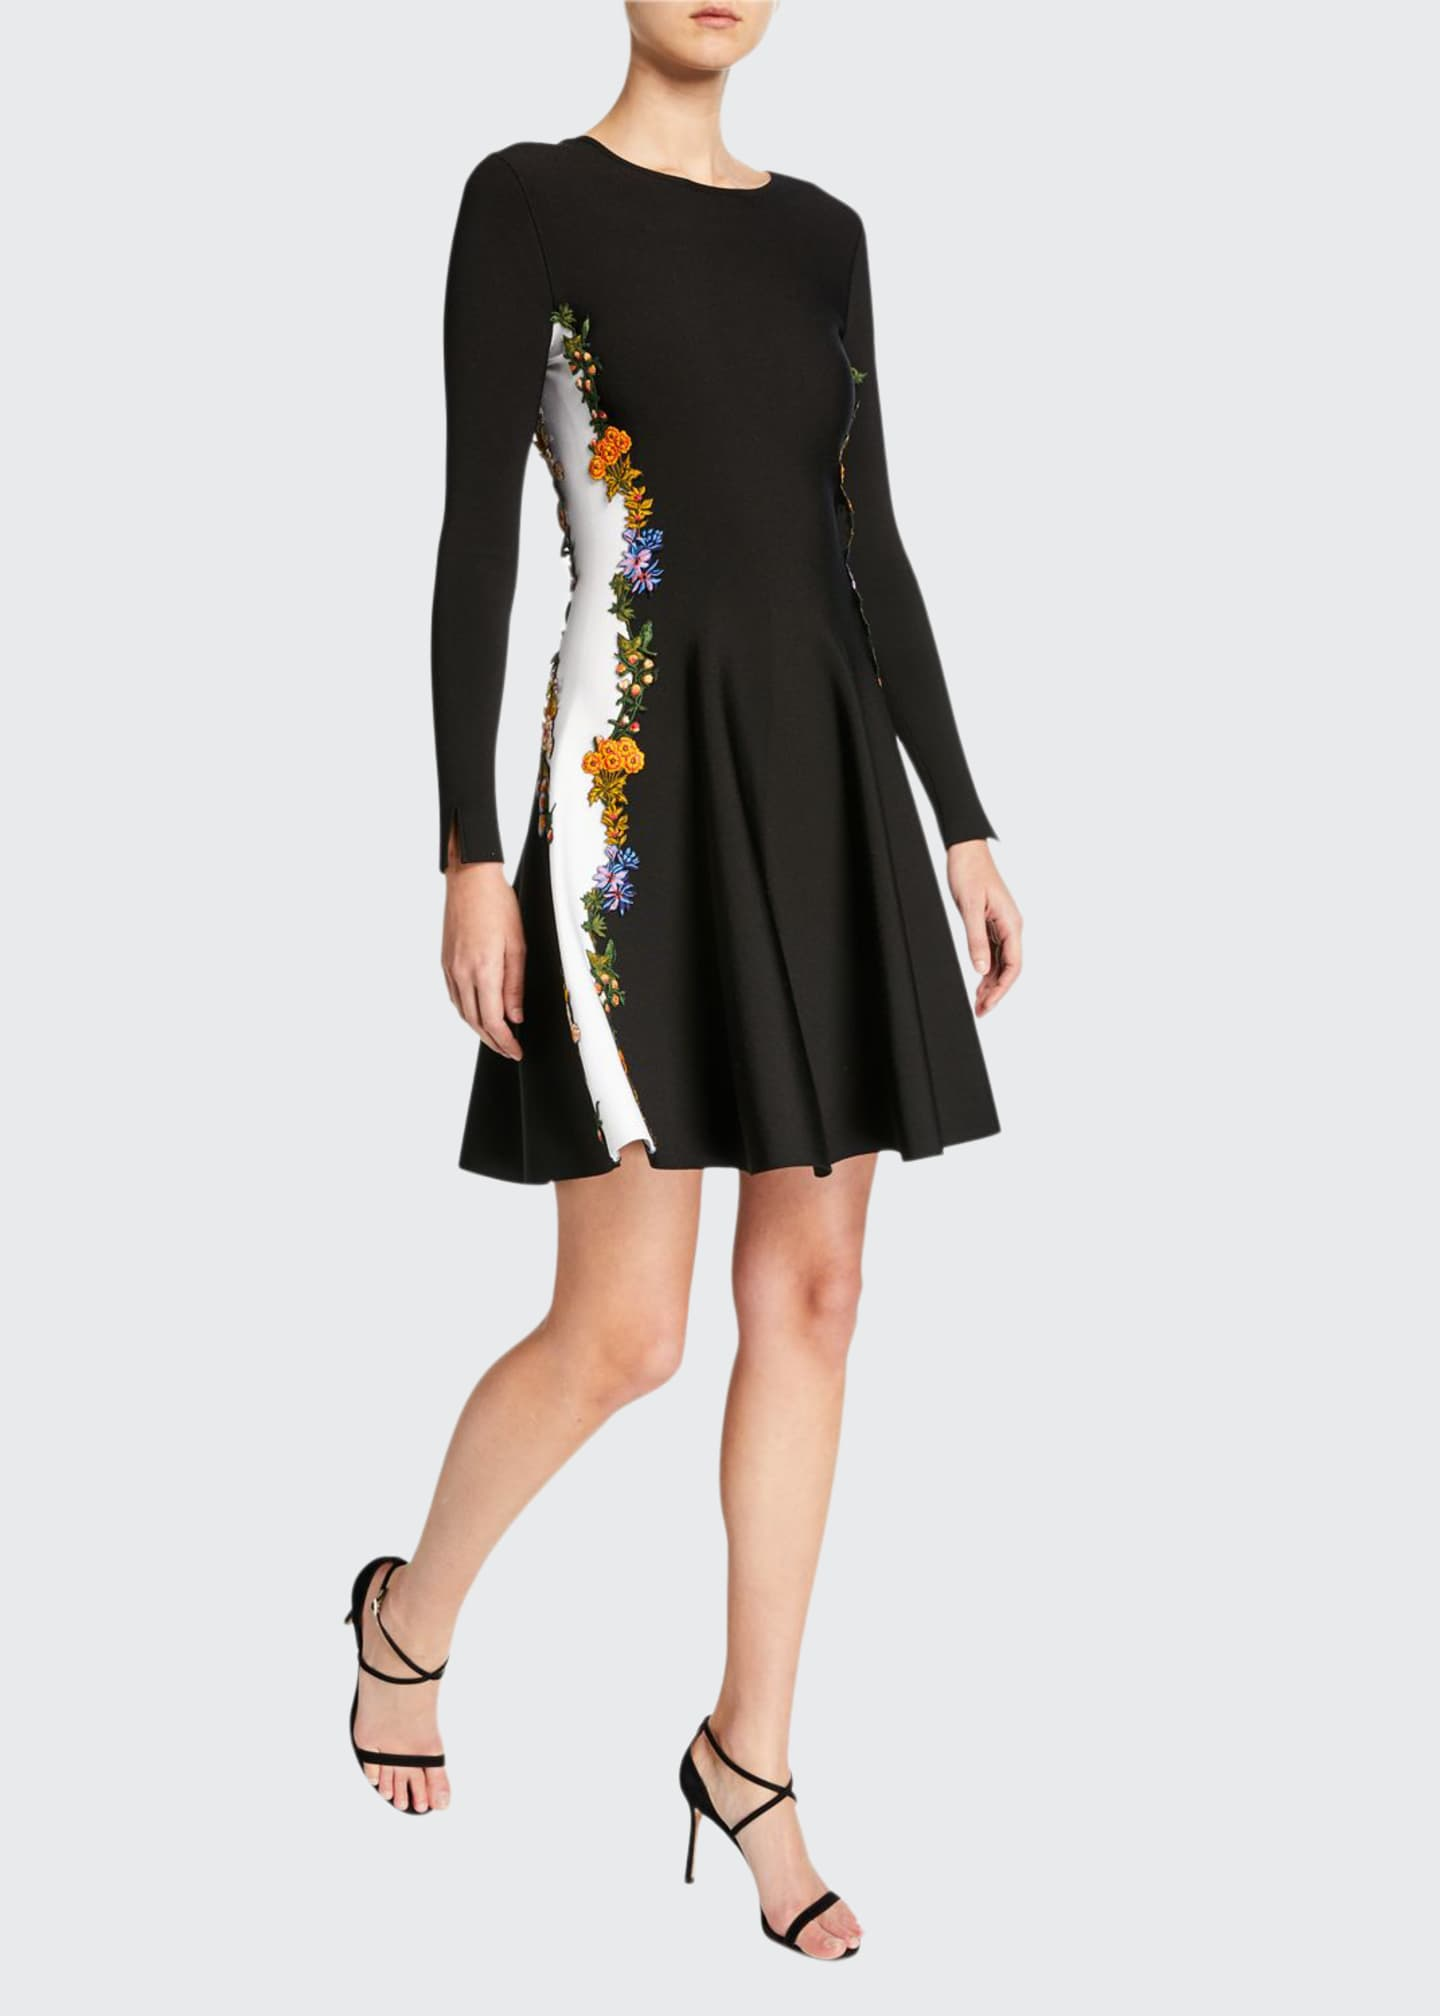 Oscar de la Renta Long-Sleeve Embroidered Side-Striped Dress